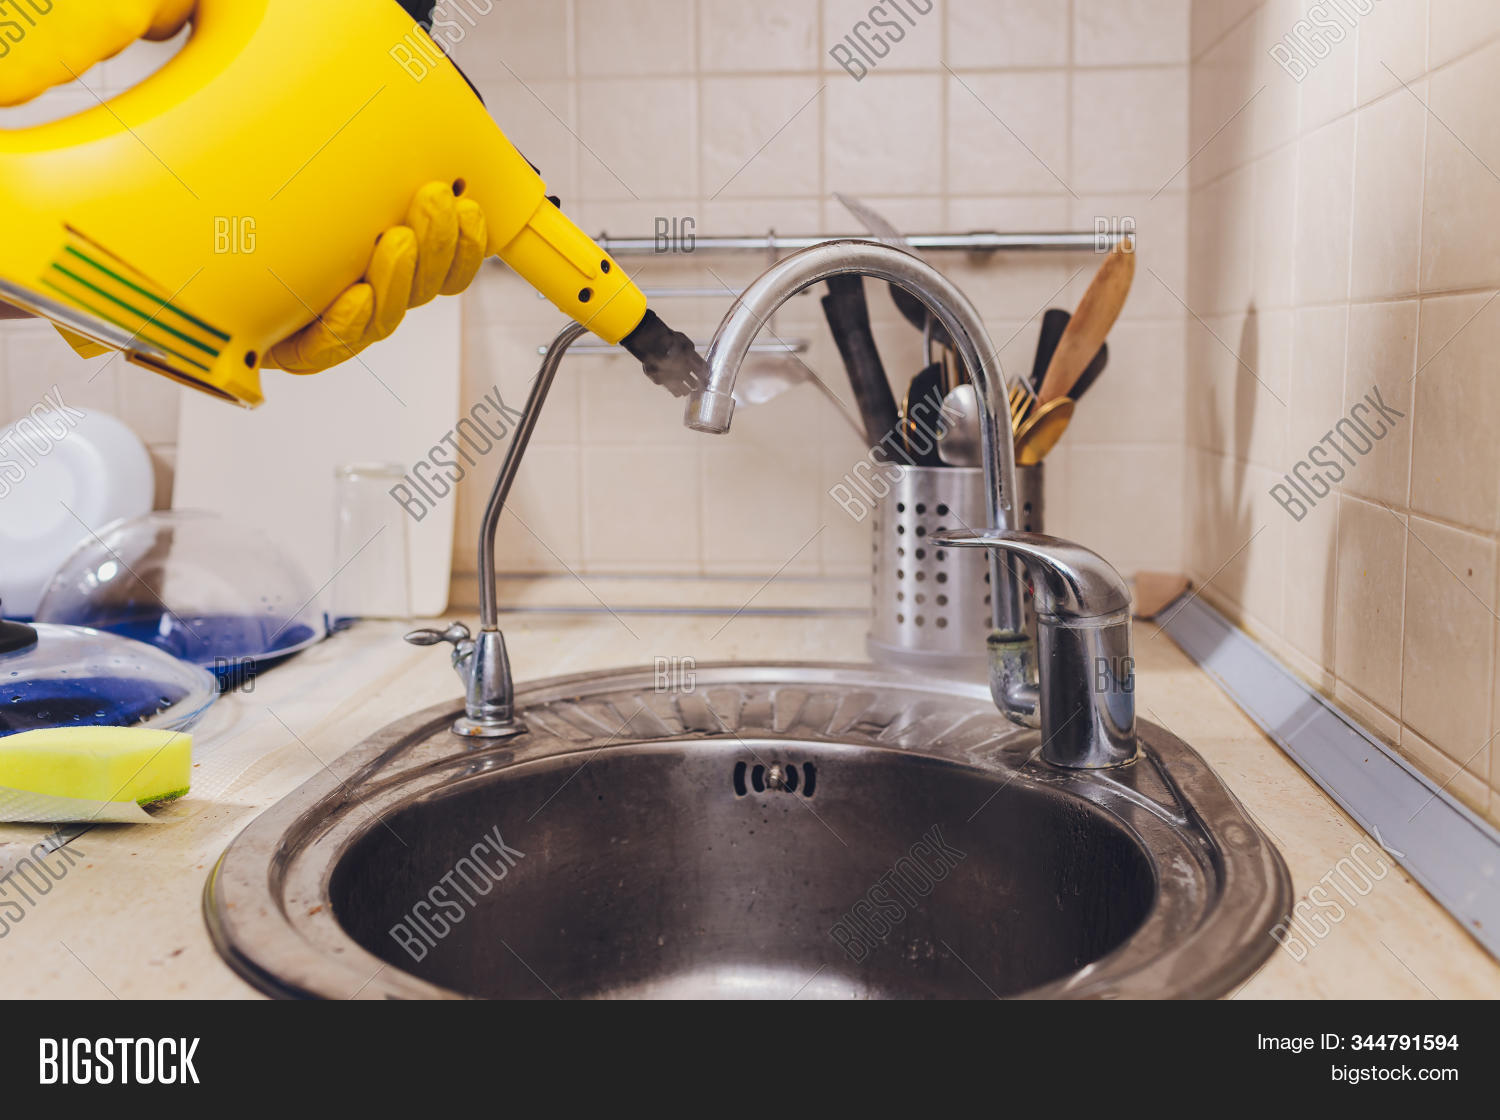 Water Tap Detail Image Photo Free Trial Bigstock